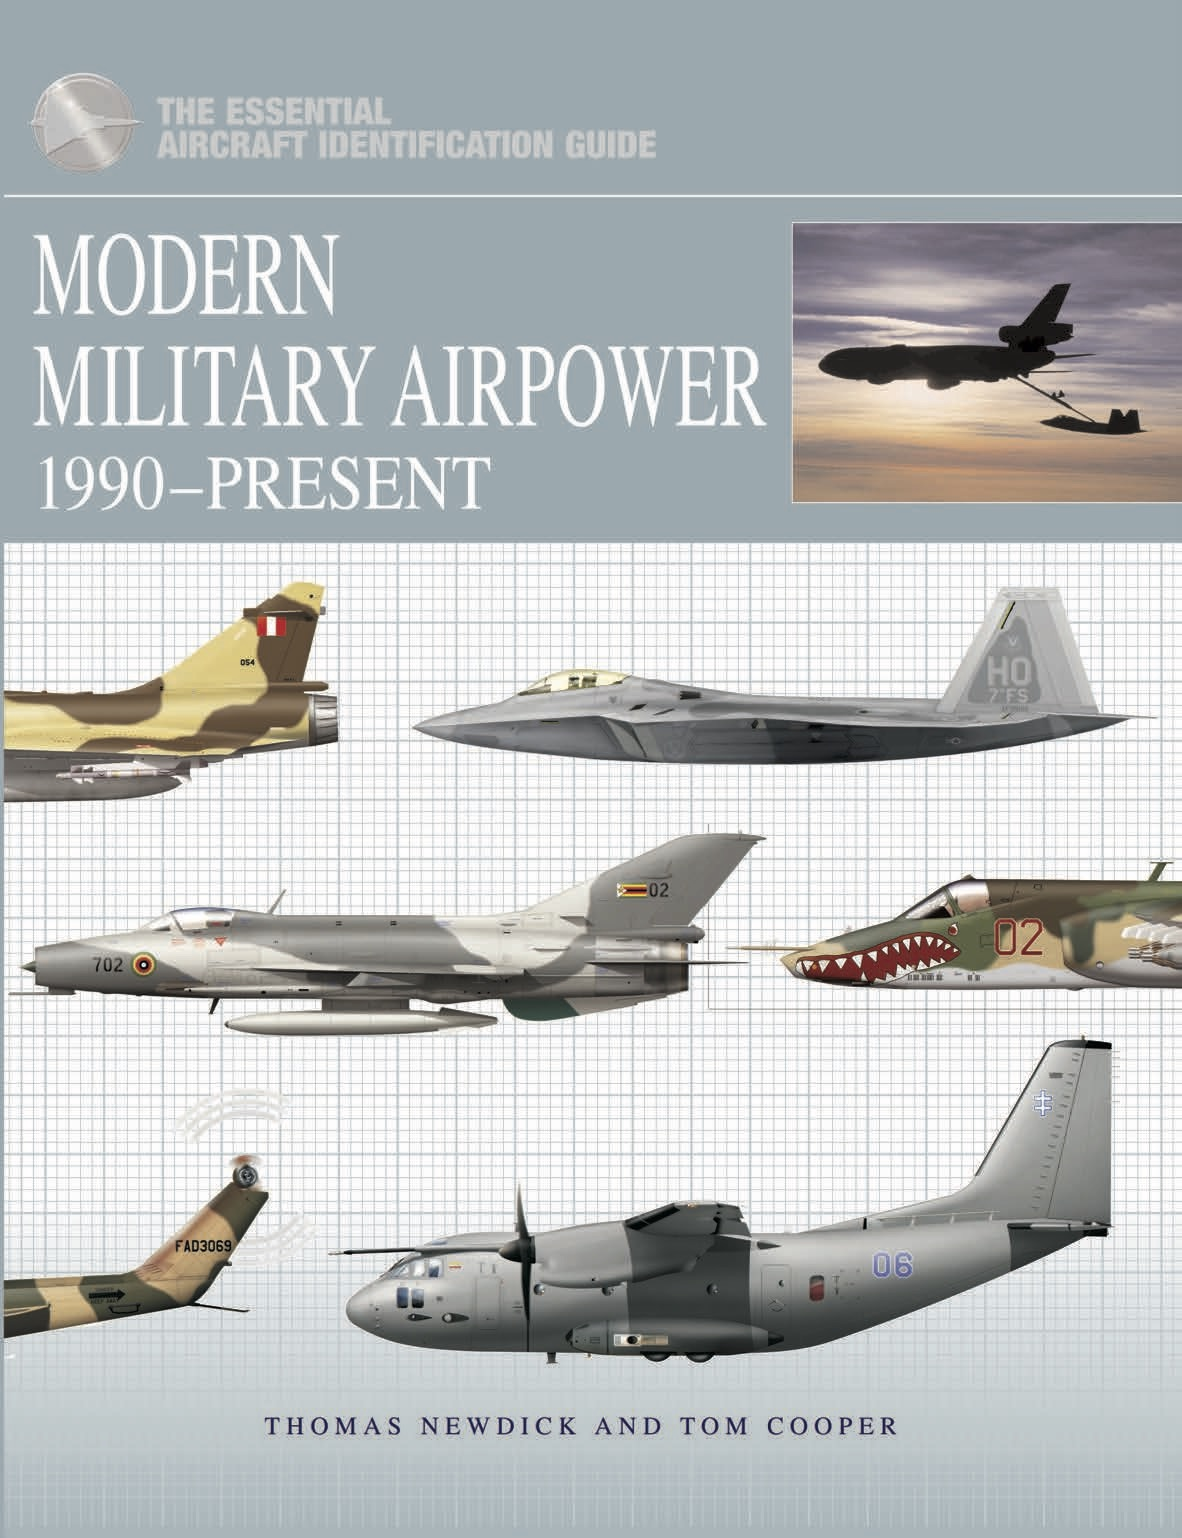 Modern Military Airpower: The Essential Aircraft Identification Guide